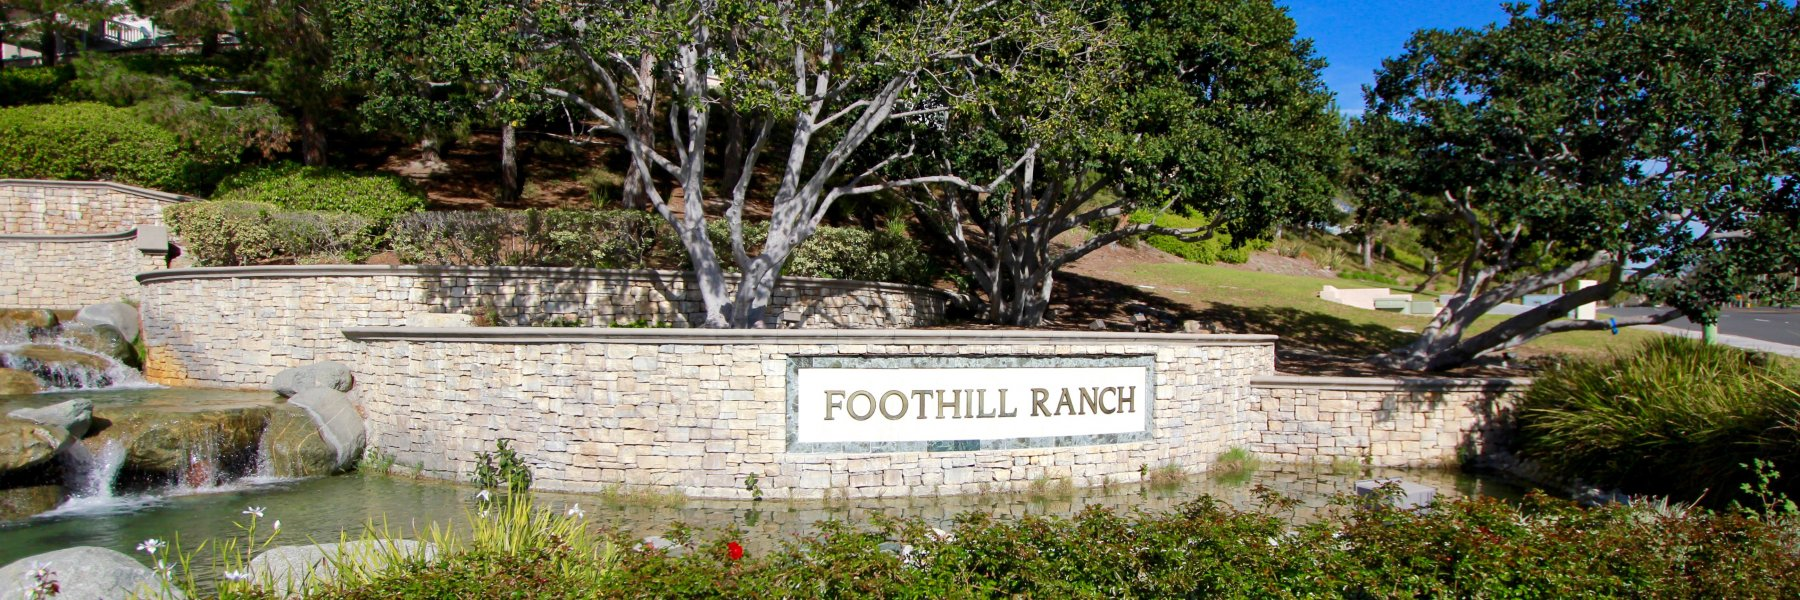 Foothill Ranch is a community of homes in Lake Forest California